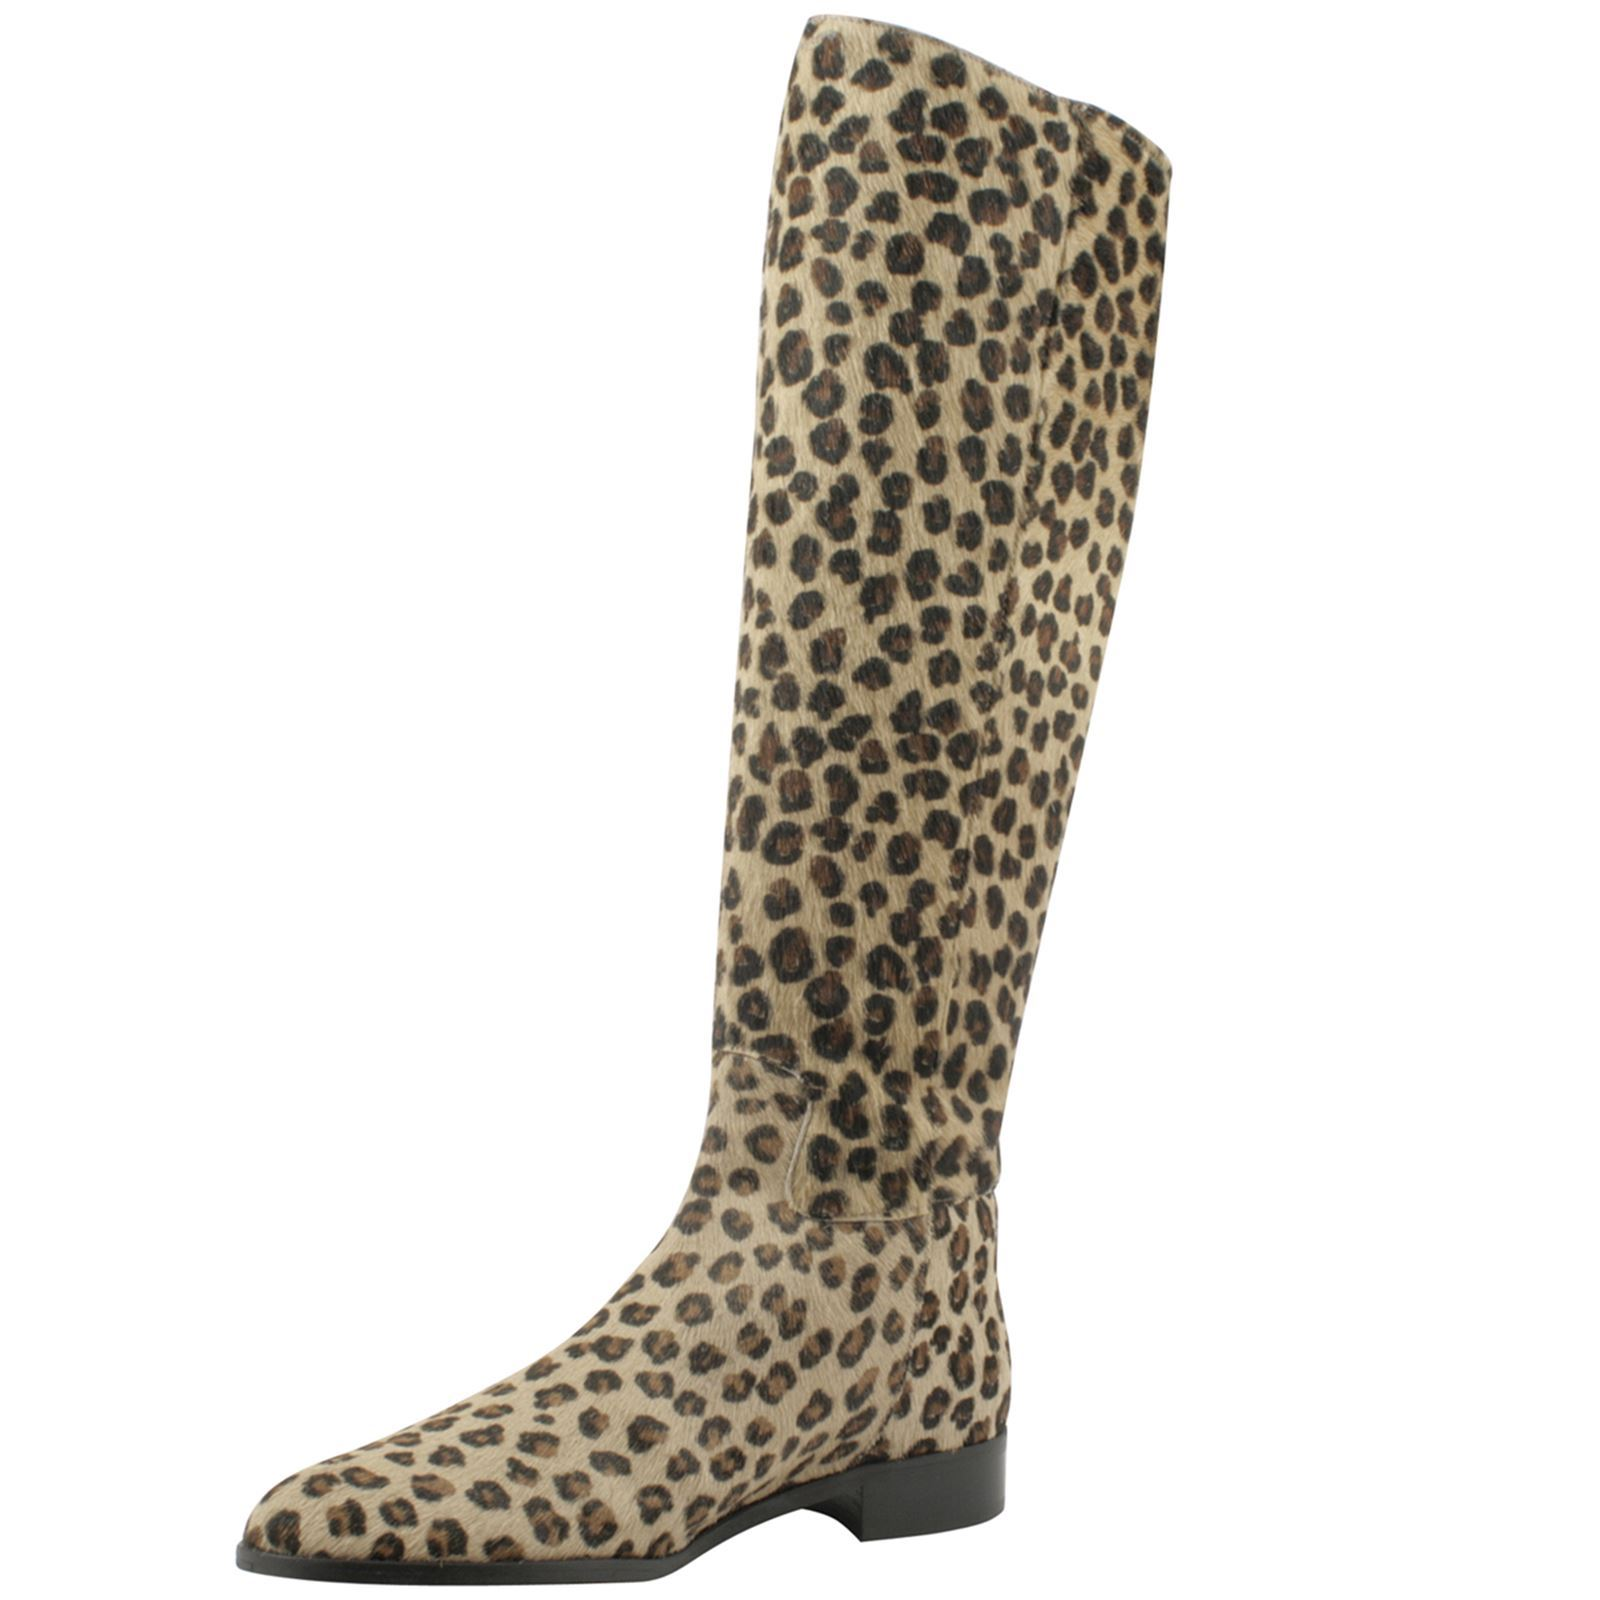 Exclusif Paris Kim - Bottes en cuir - multicolore